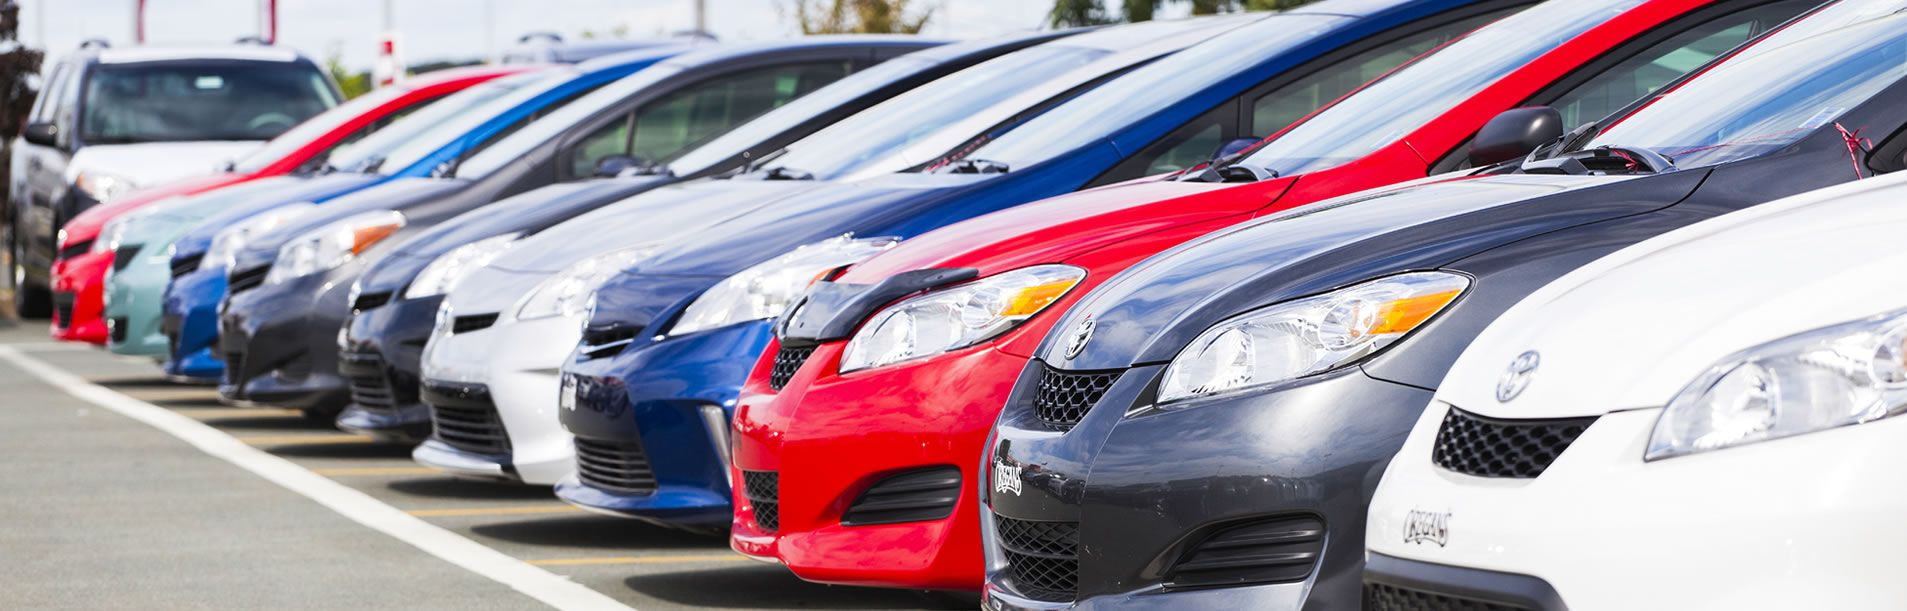 get quick approved auto loans in greenville and new bern nc by your most trusted auto dealer auto store group auto store car dealership greenville pinterest